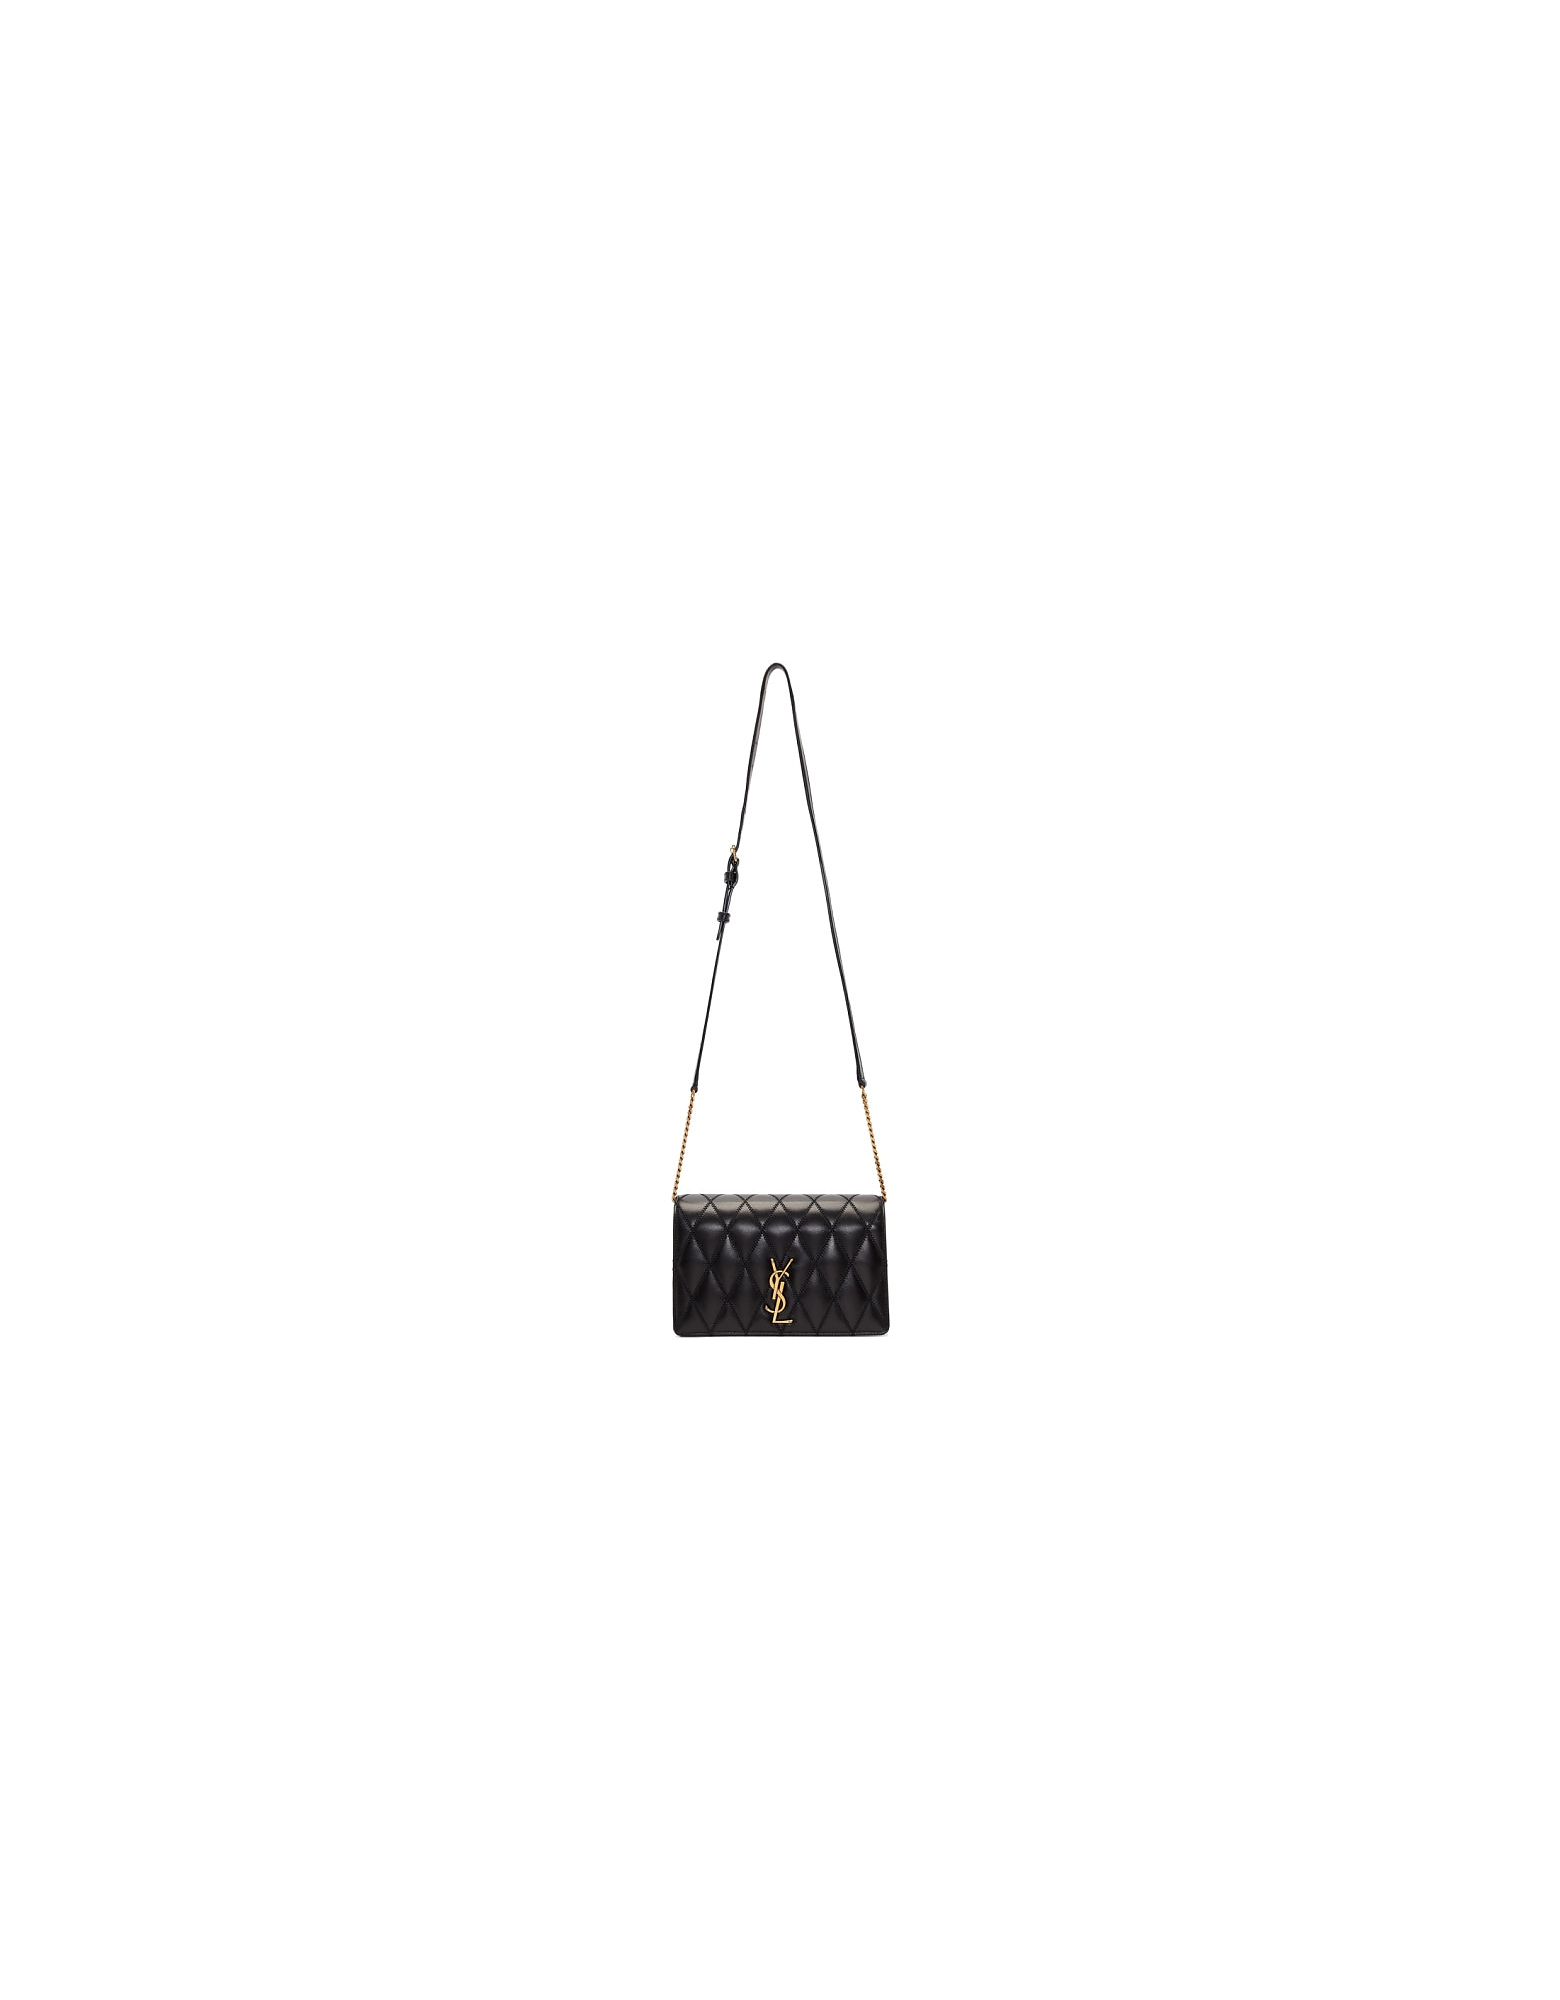 Saint Laurent Designer Handbags, Black Angie Chain Bag